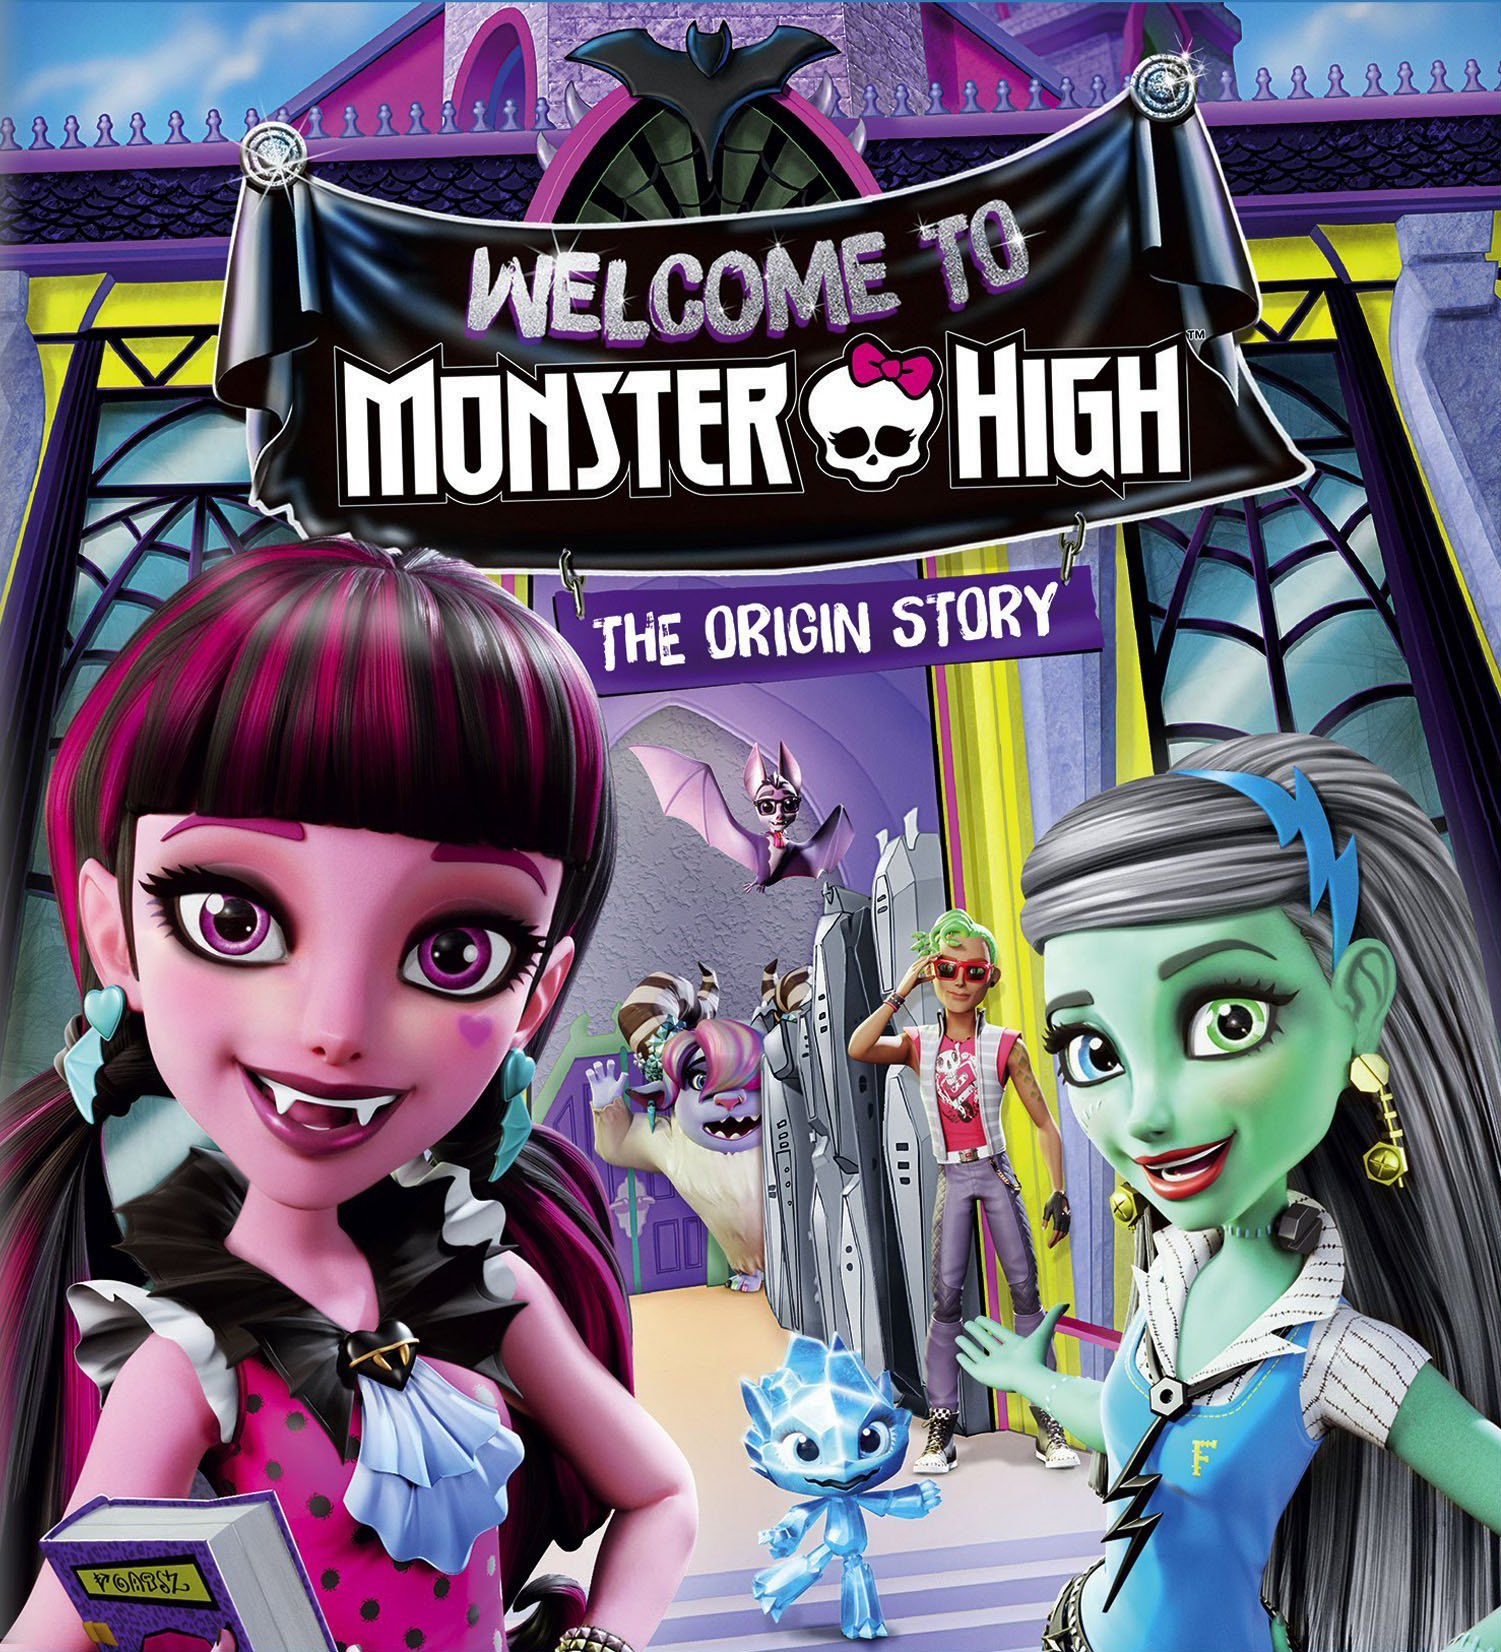 Monster_High_-_Welcome_to Monster_High.jpg